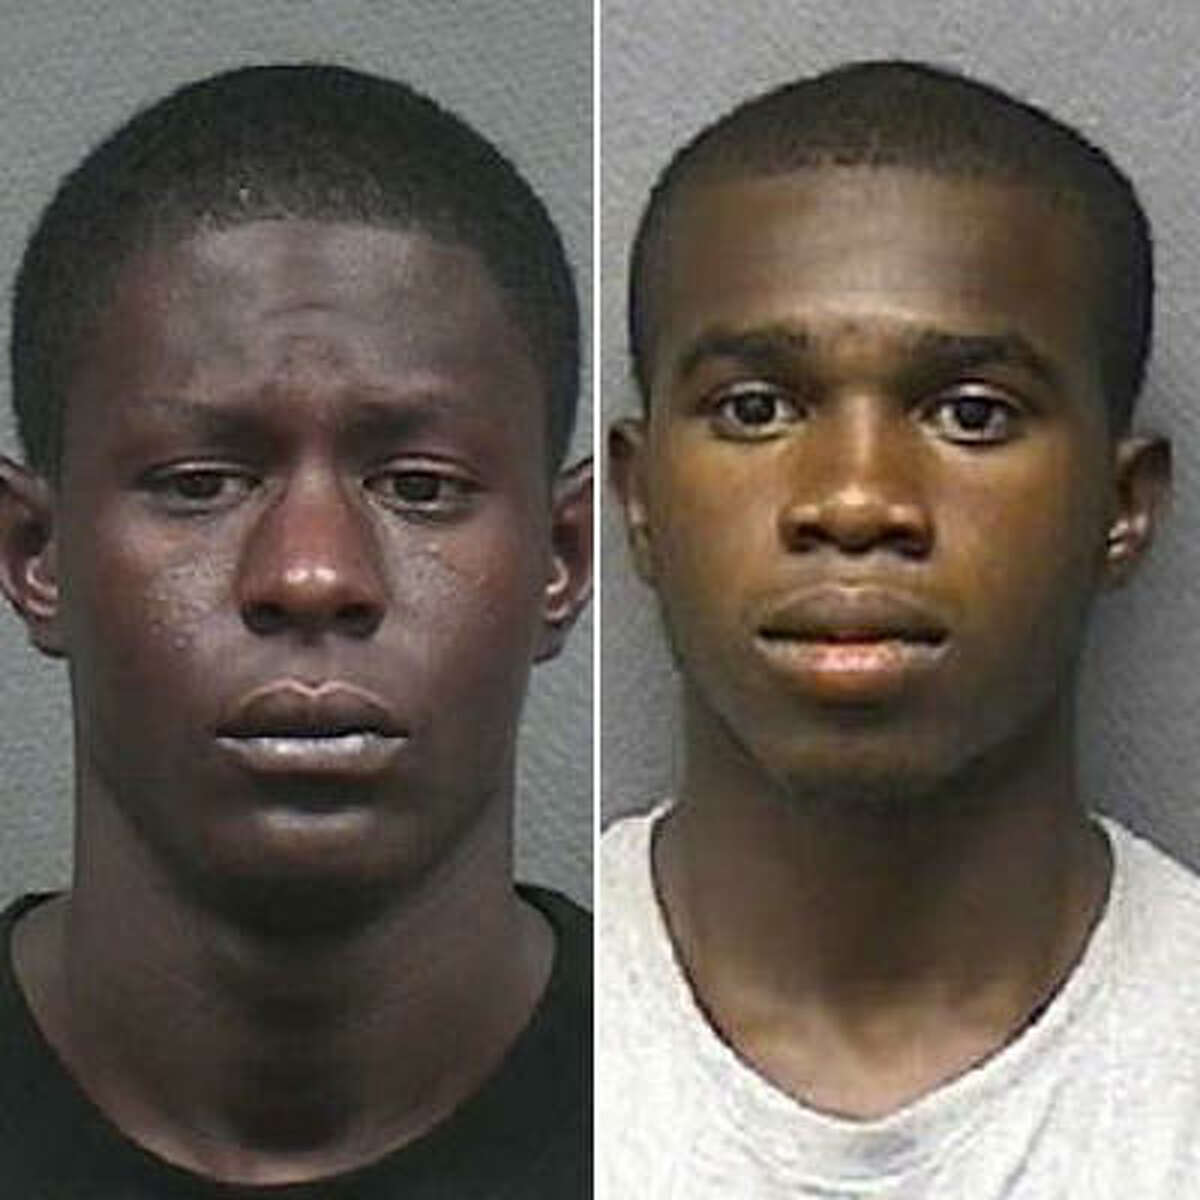 Albert Randle, 20, left, and Arreinius Watson, 19, are charged with burglary of a habitation.